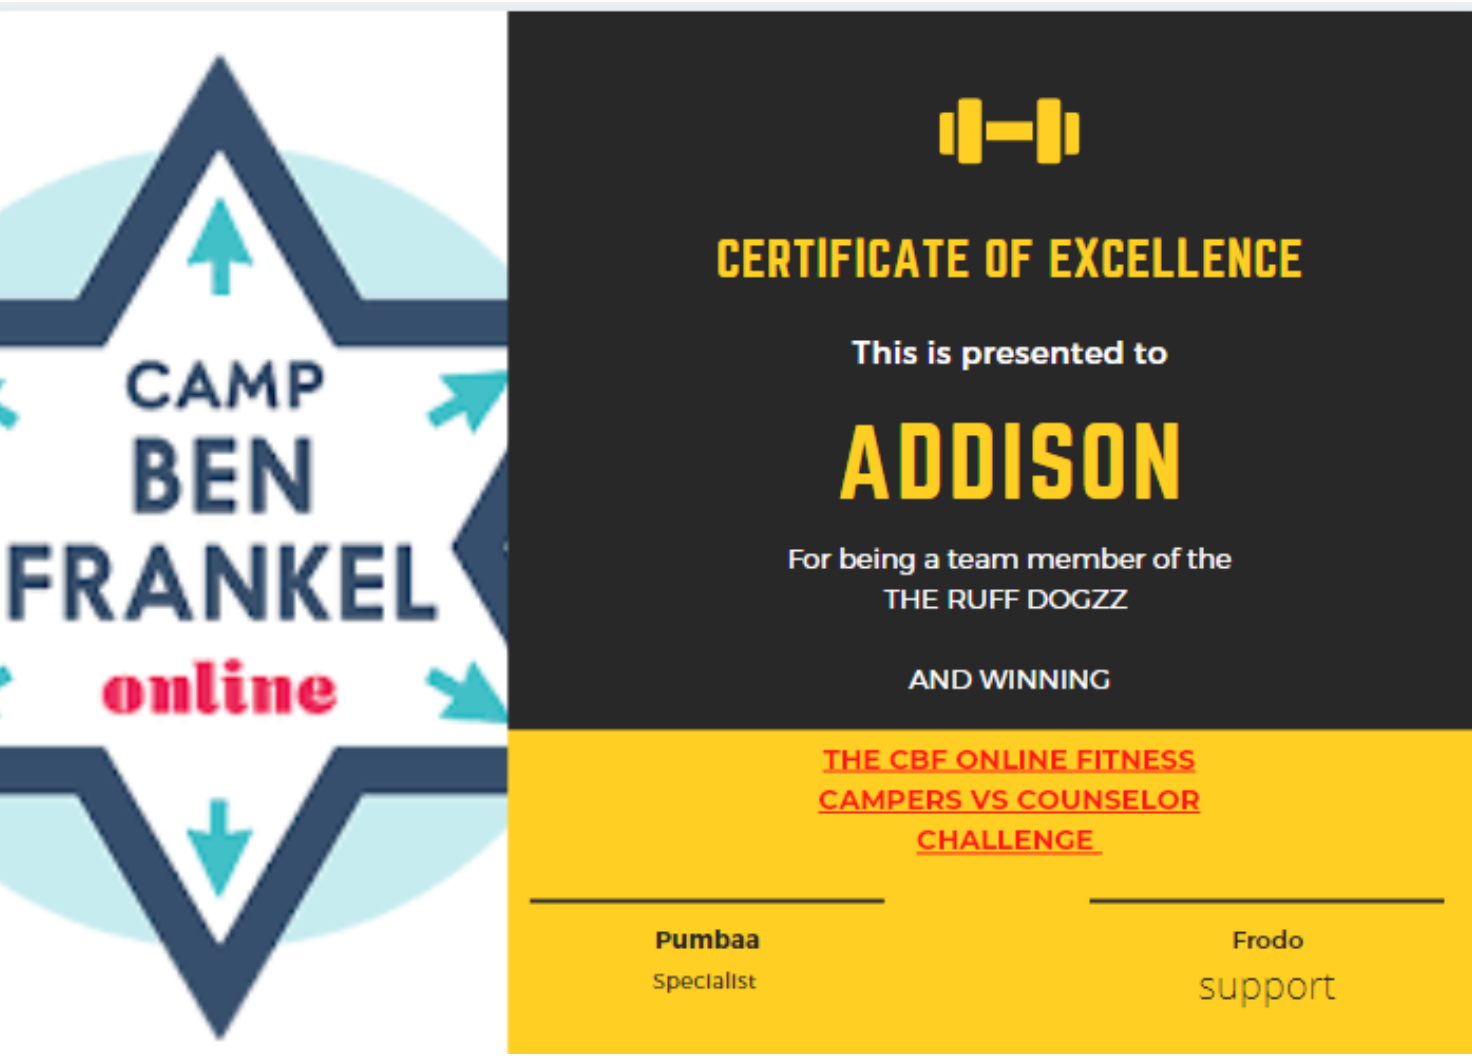 Addison - Certificate of Excellence